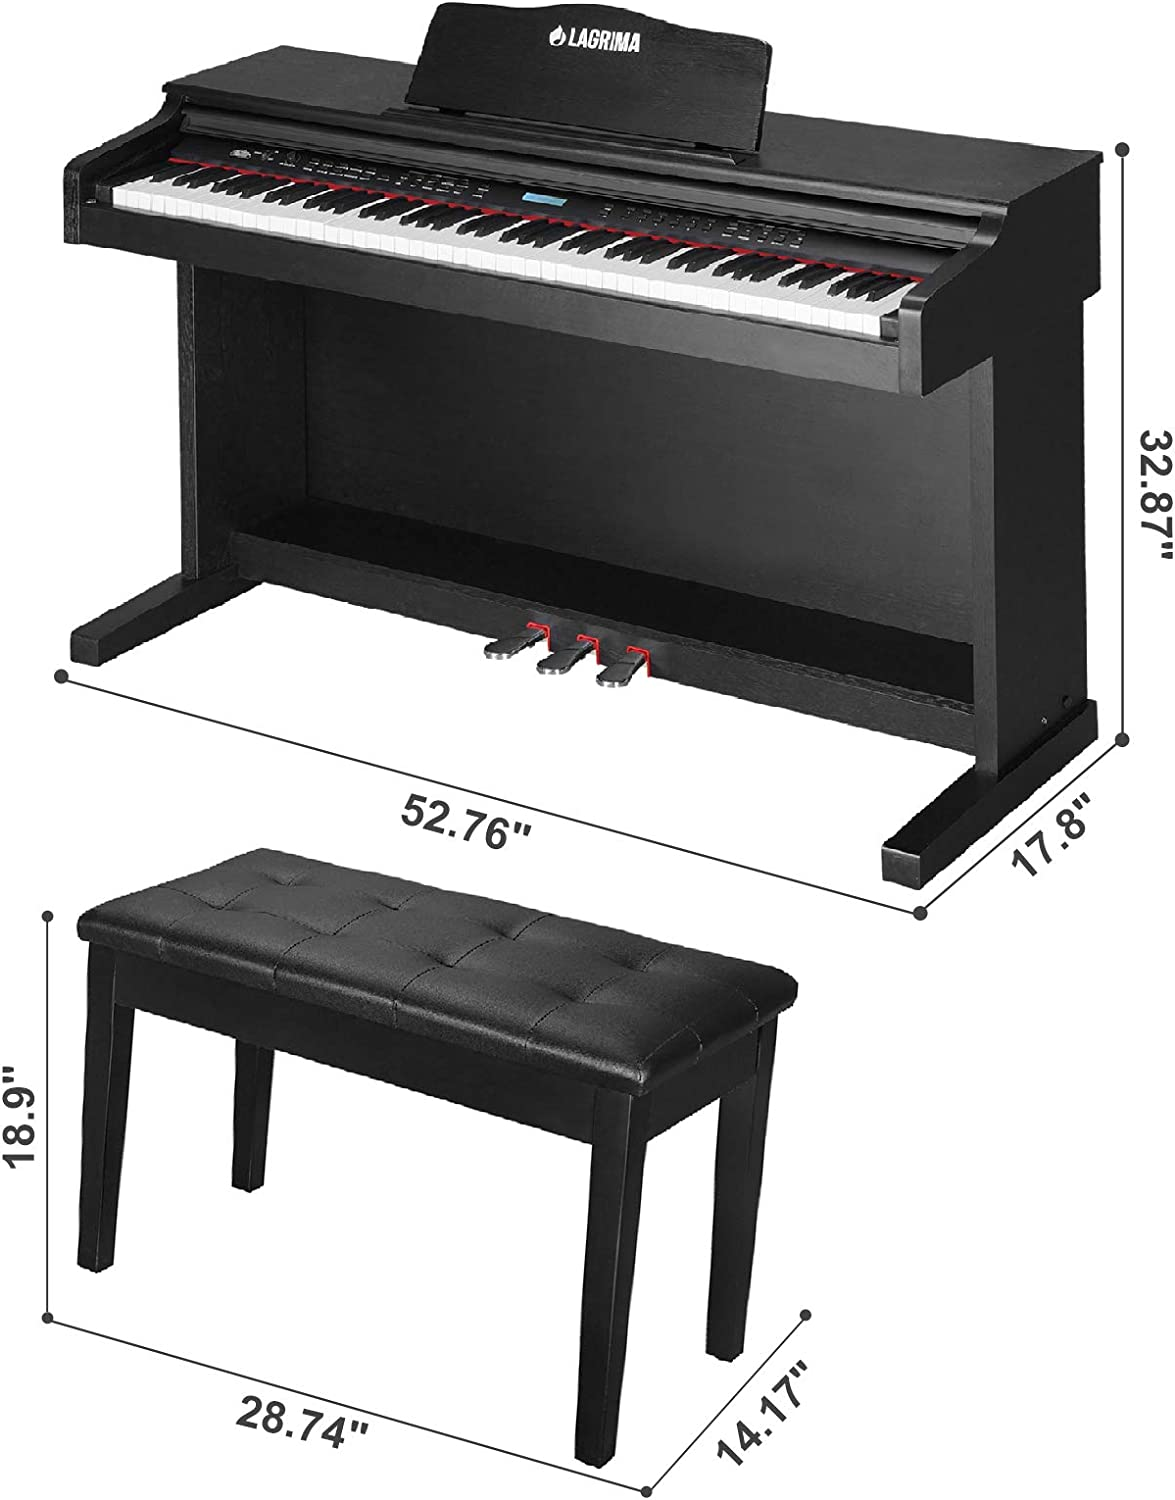 Black LAGRIMA 88 Key Digital Piano Electric Keyboard Piano for Beginner//Adults with 2 Person Padded Piano Bench+Music Stand+Power Adapter+3-Pedal Board+Instruction Book+Headphone Jack